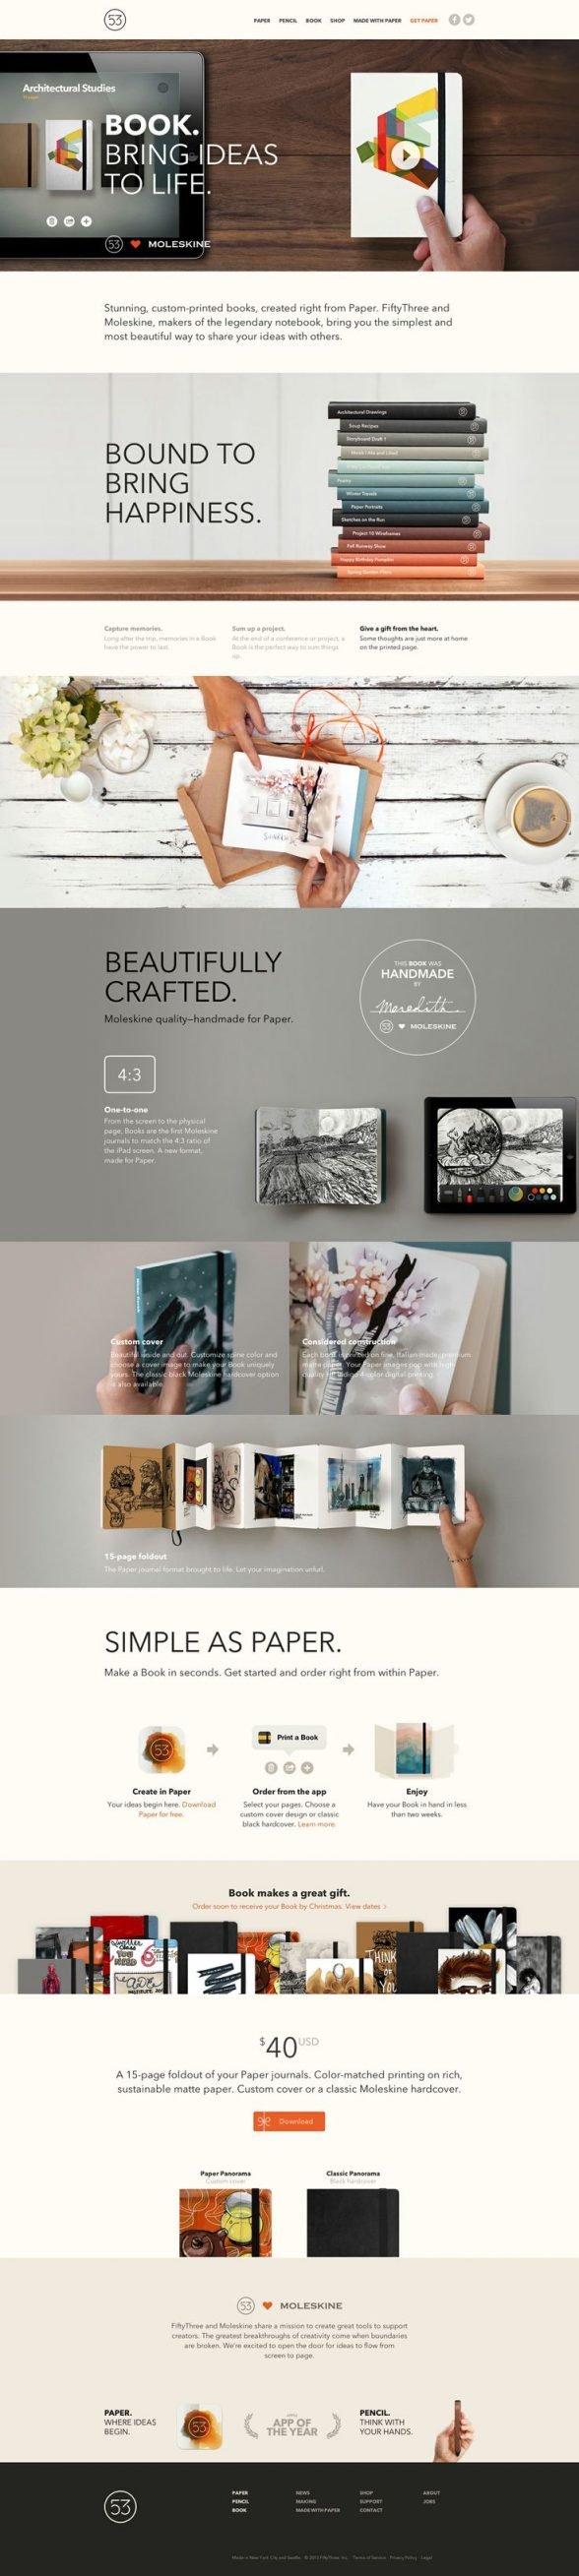 22 excellent ecommerce email templates examples to inspire for Interior design email